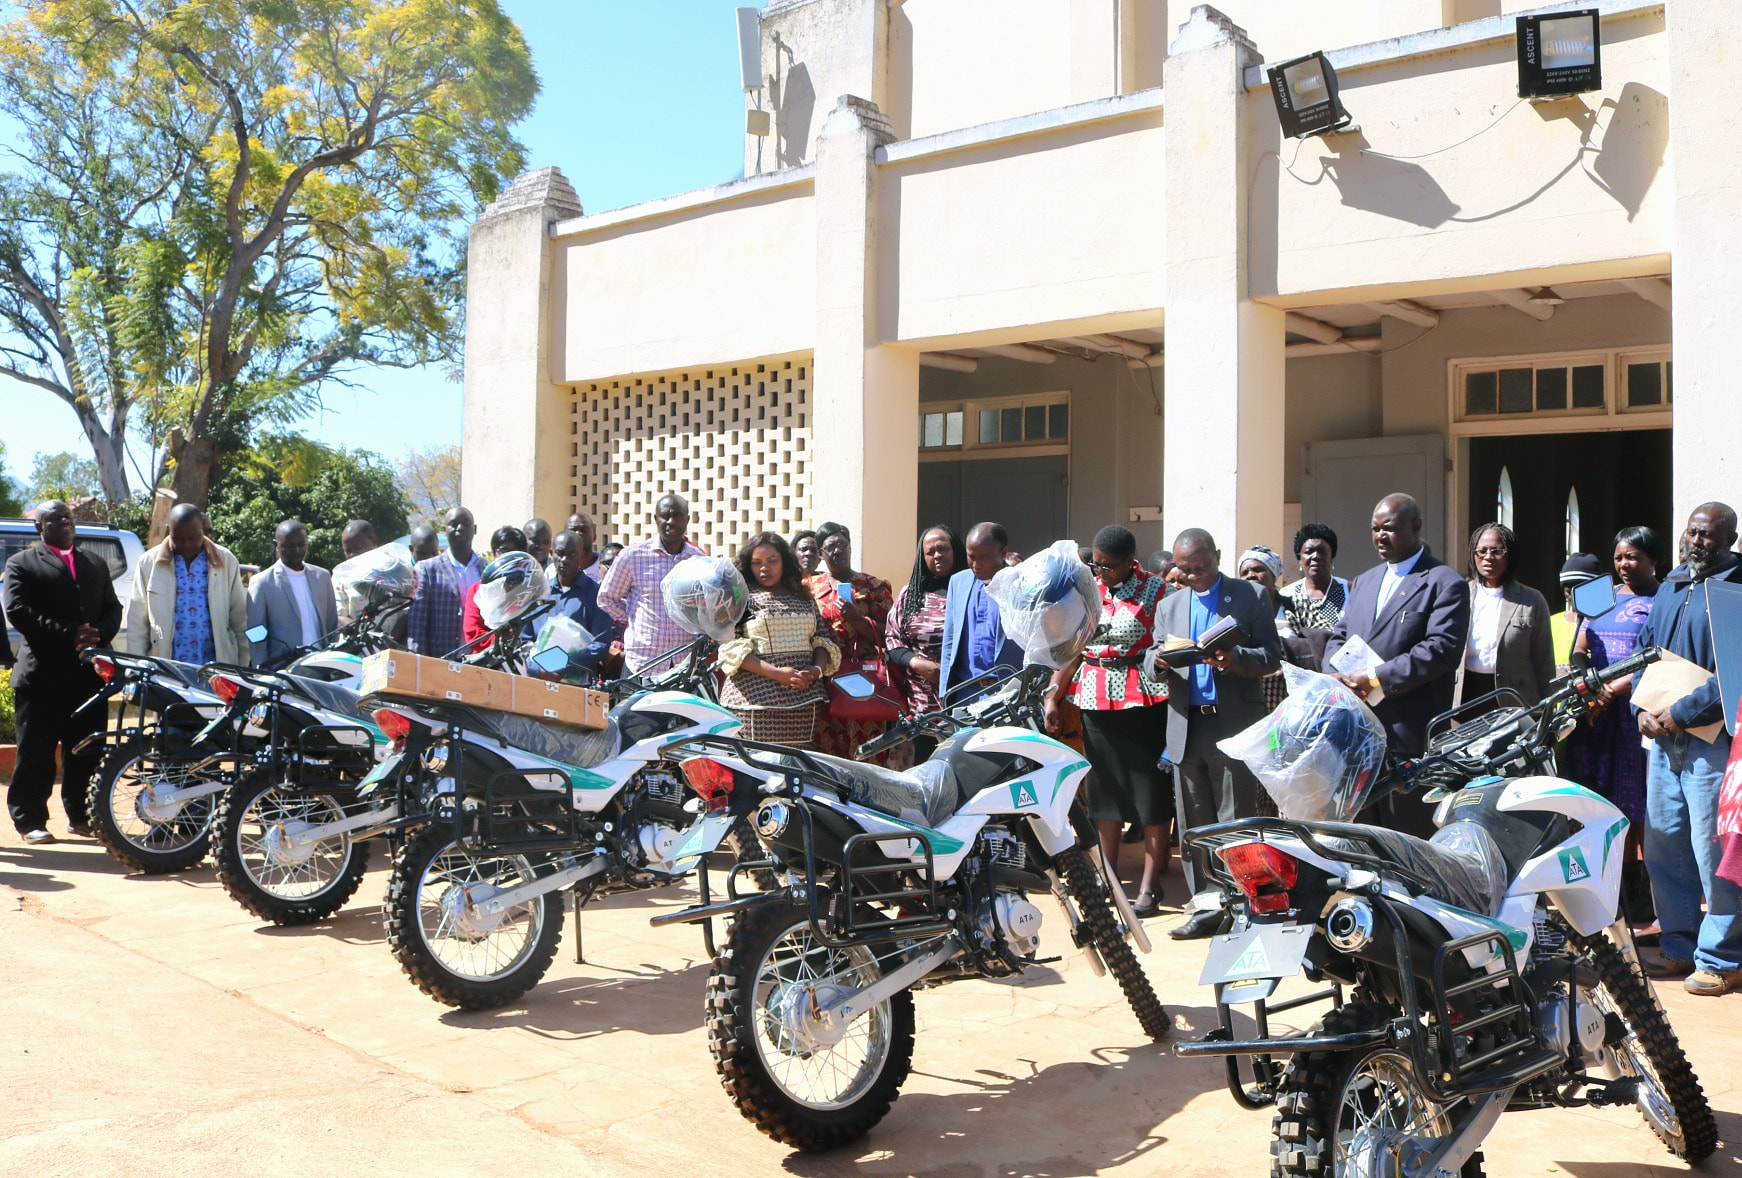 The ministry of five pastors was transformed when they were given motorbikes at a ceremony at Old Mutare Circuit in the Mutasa Nyanga District of Zimbabwe on July 20. The harsh topography makes most of the area inaccessible by traditional motor vehicles. Officiating was the Rev. Alan Masimba Gurupira, administrative assistant to Bishop Eben K. Nhiwatiwa, Zimbabwe Episcopal Area (center right, reading). Photo by Kudzai Chingwe, UM News.